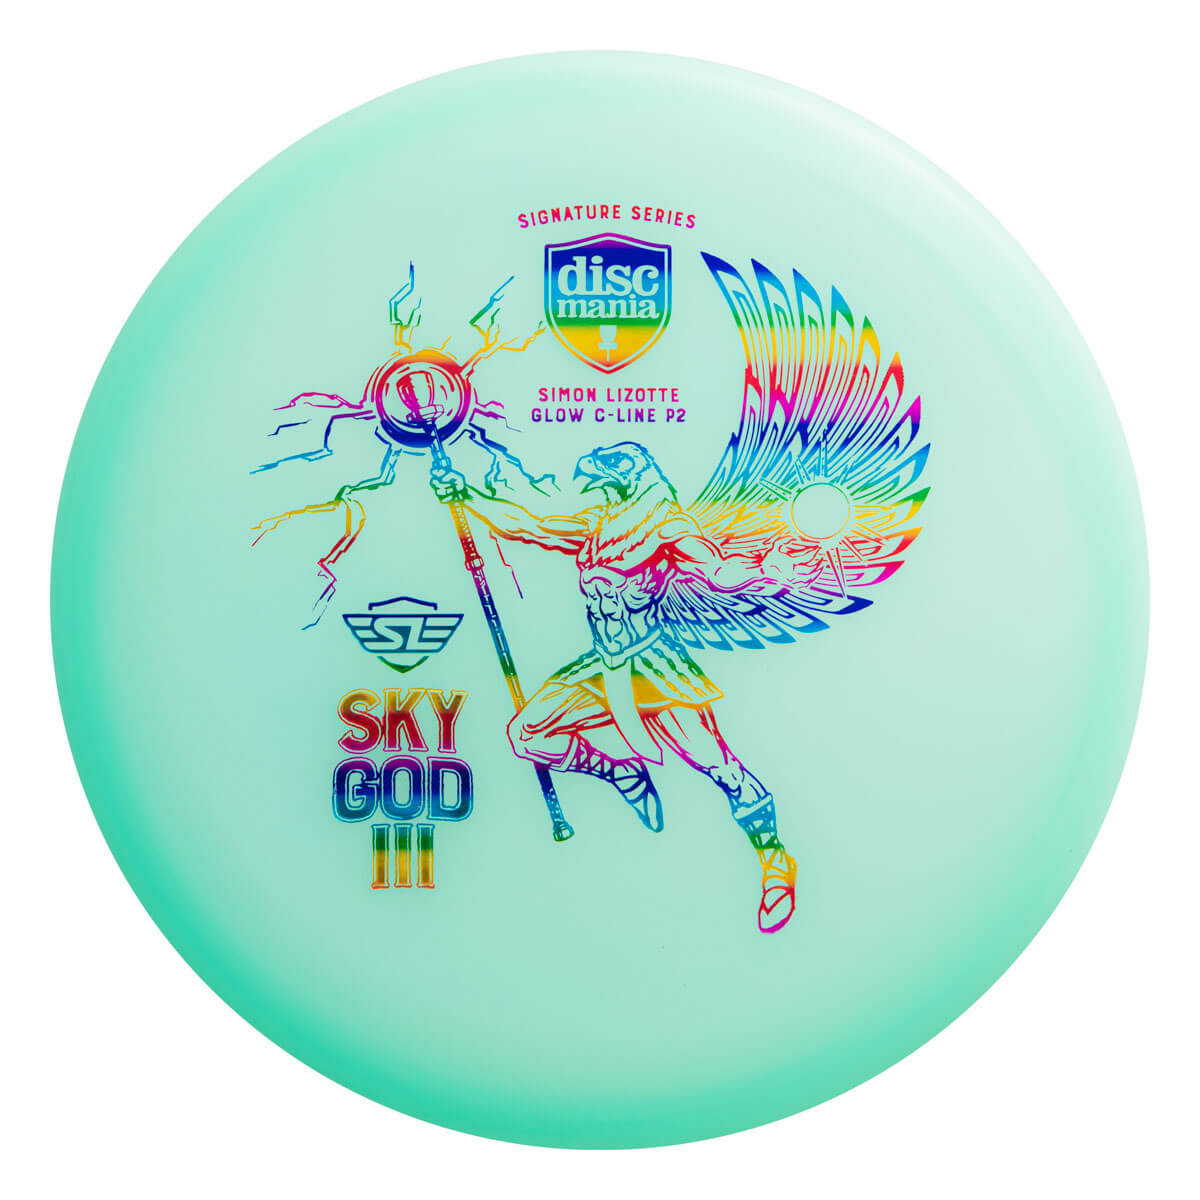 DiscMania Color Glow C-Line P2 Simon Lizotte Signature Series Sky God III